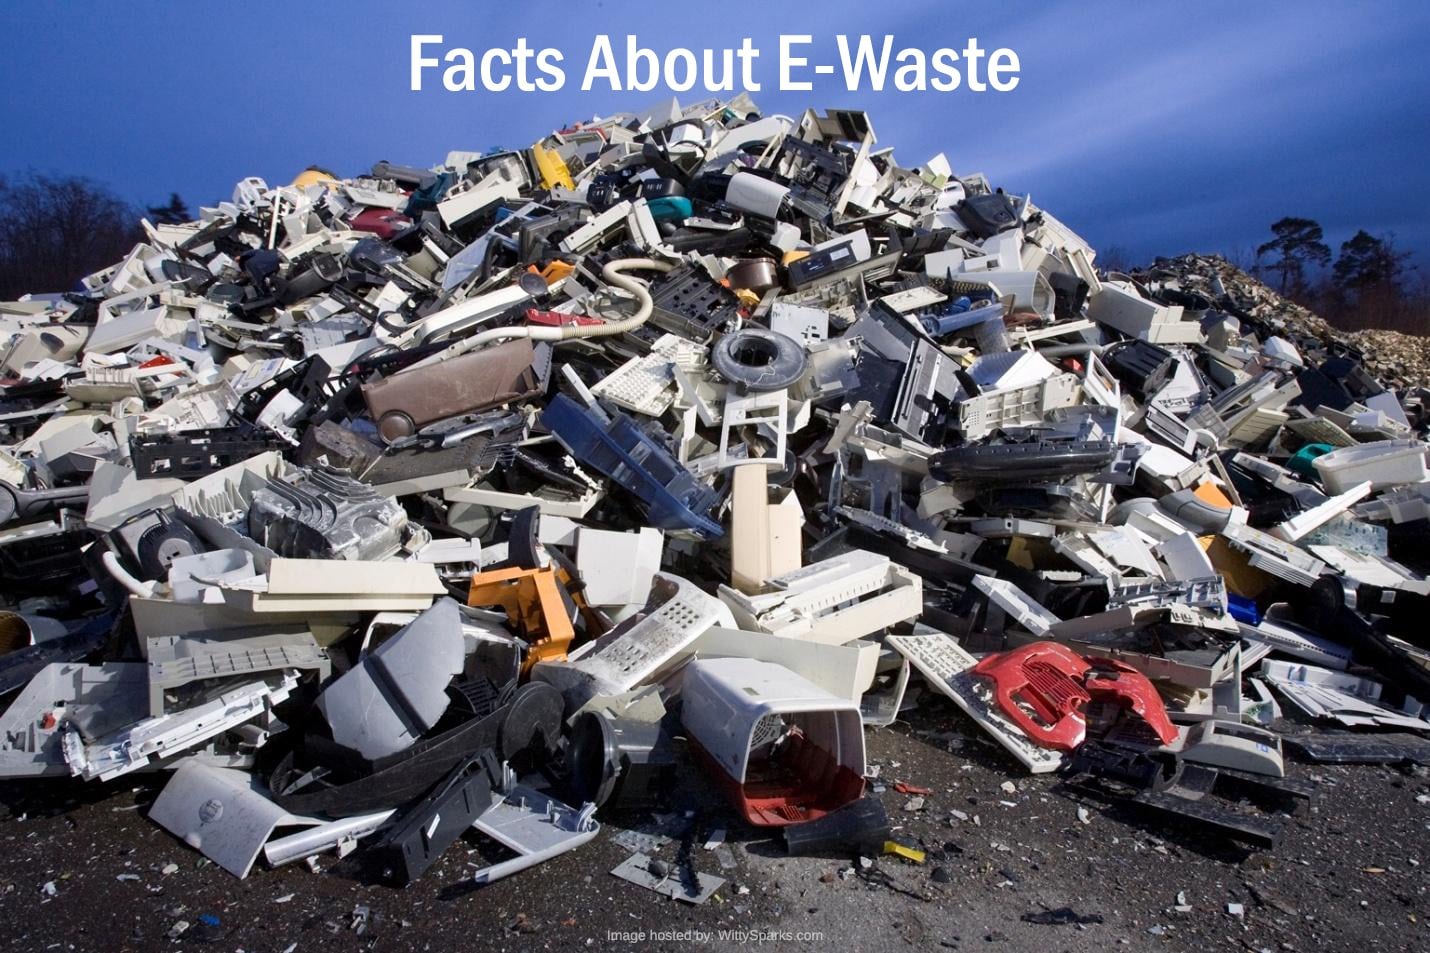 Facts of E-waste